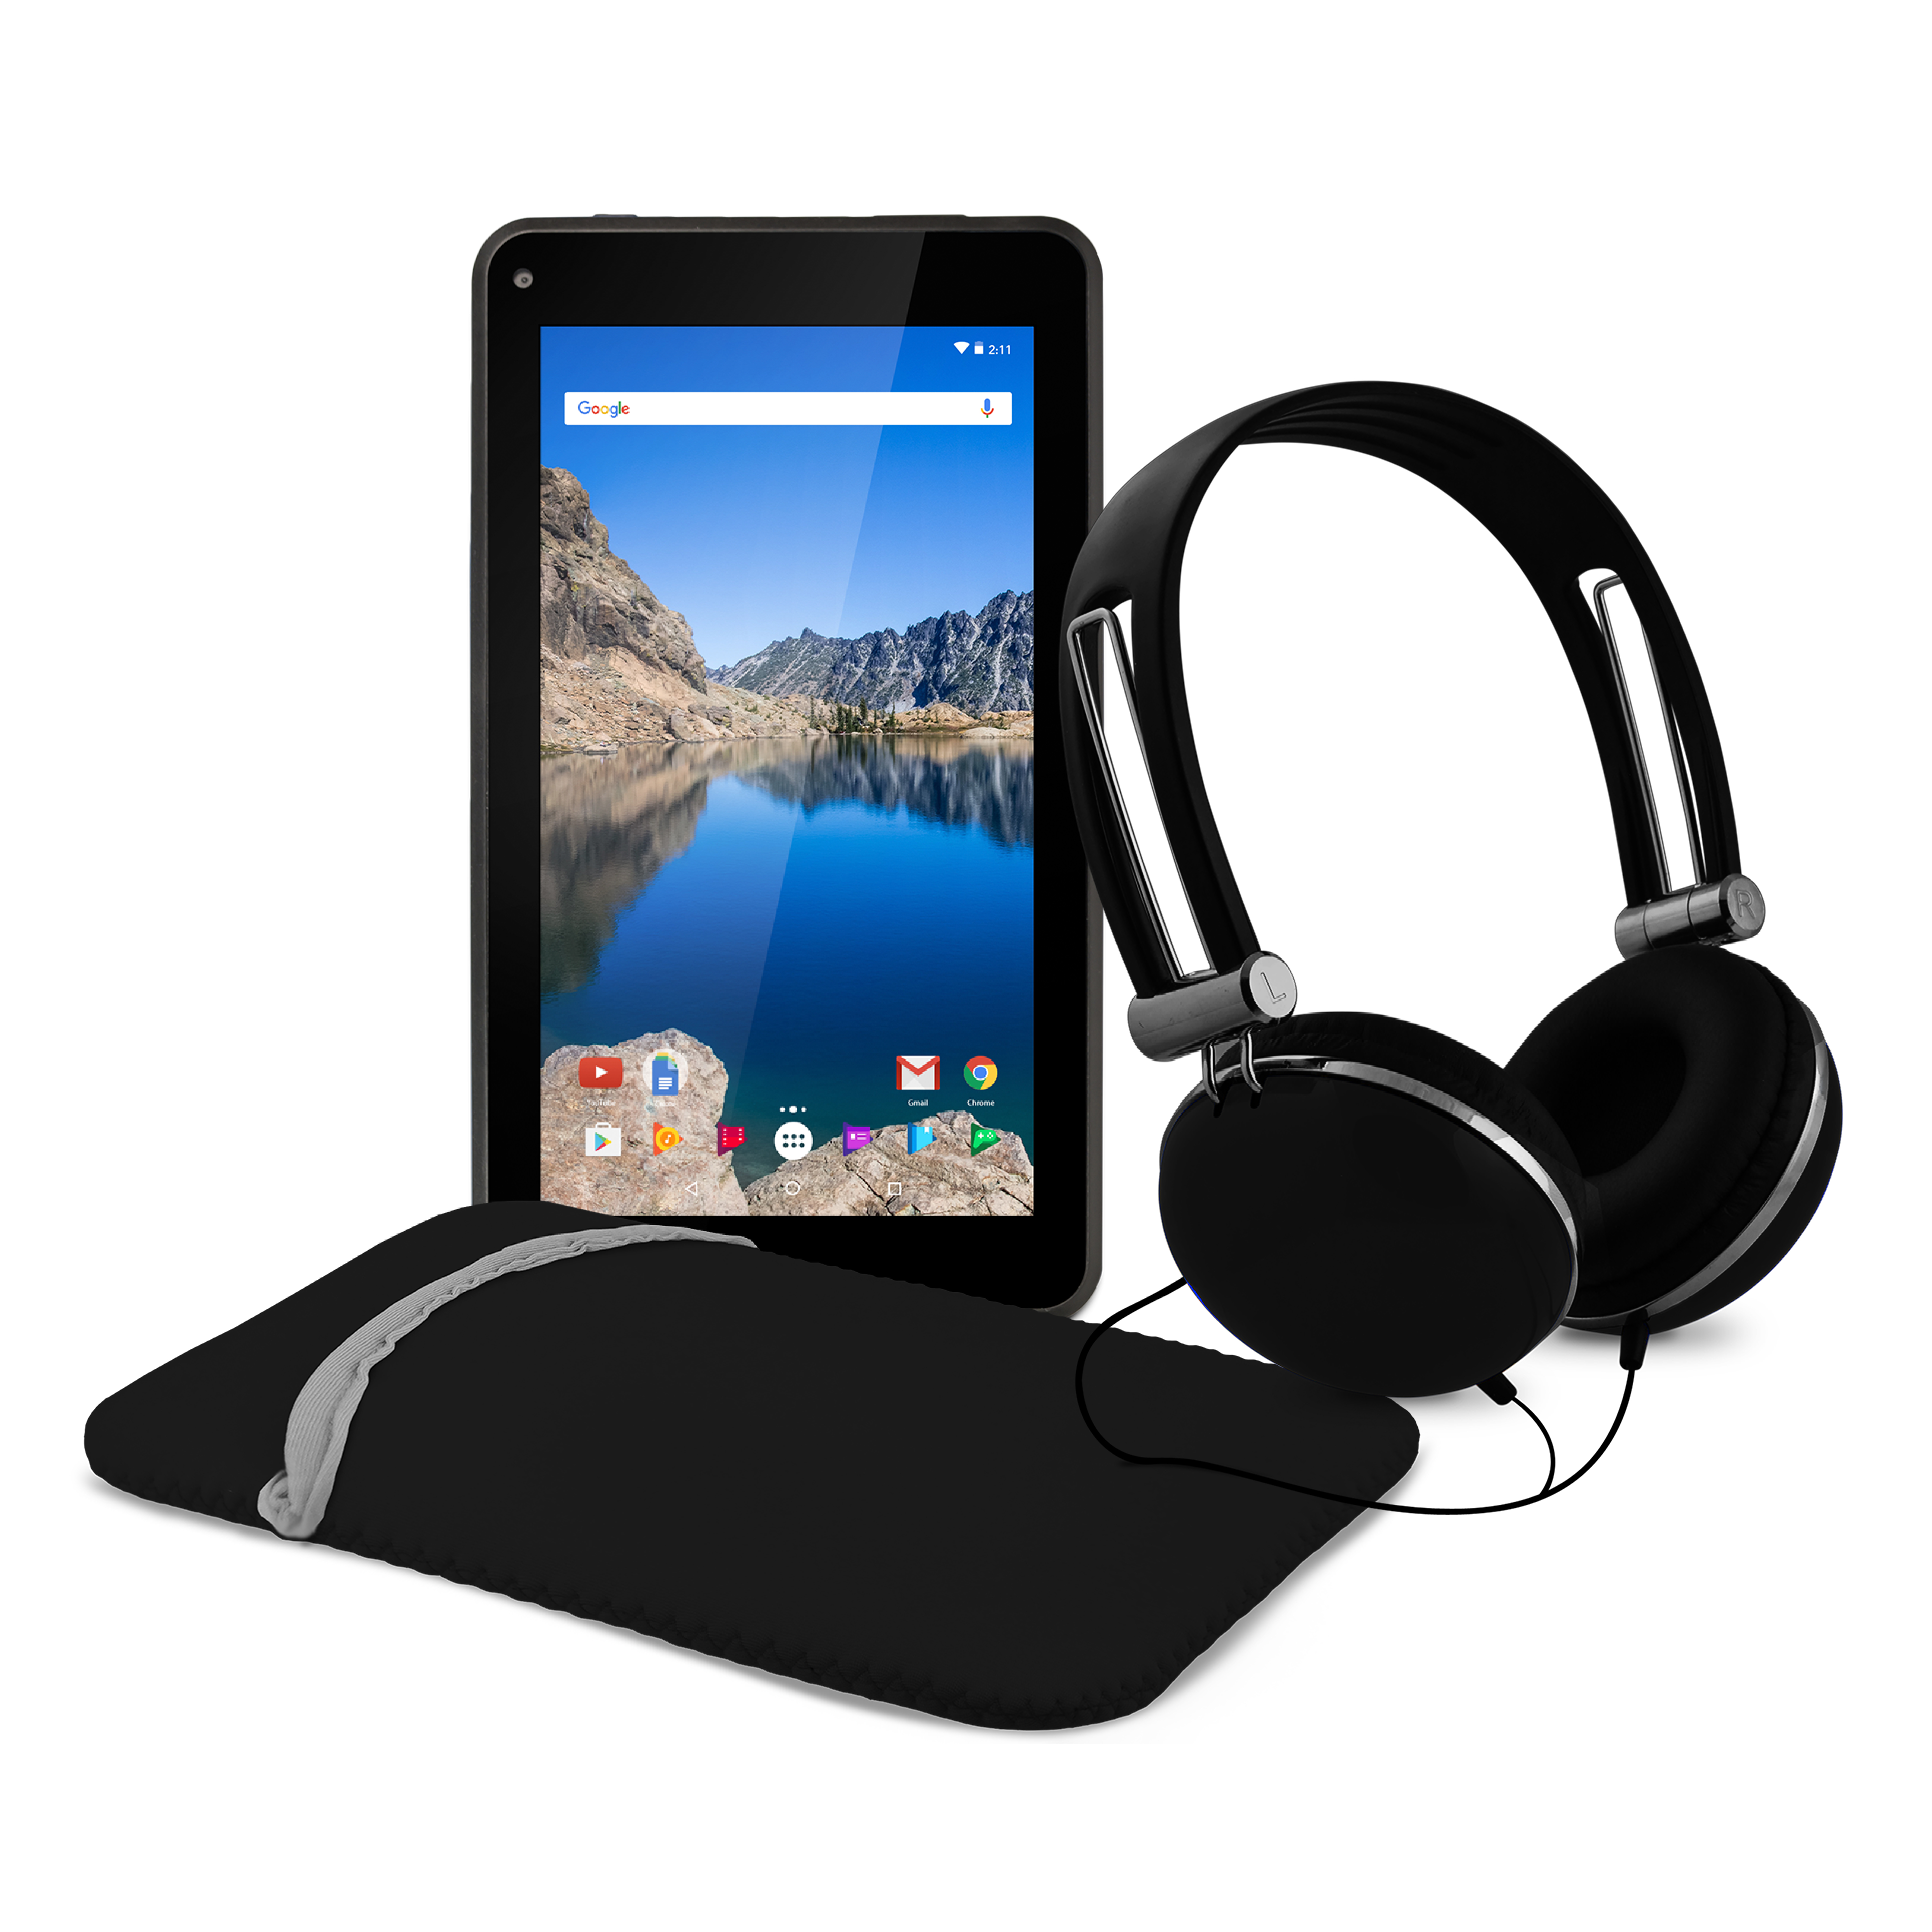 "Ematic EGQ373 7"" 16GB Android 7.1 Nougat Tablet with Sleeve and Headphones"